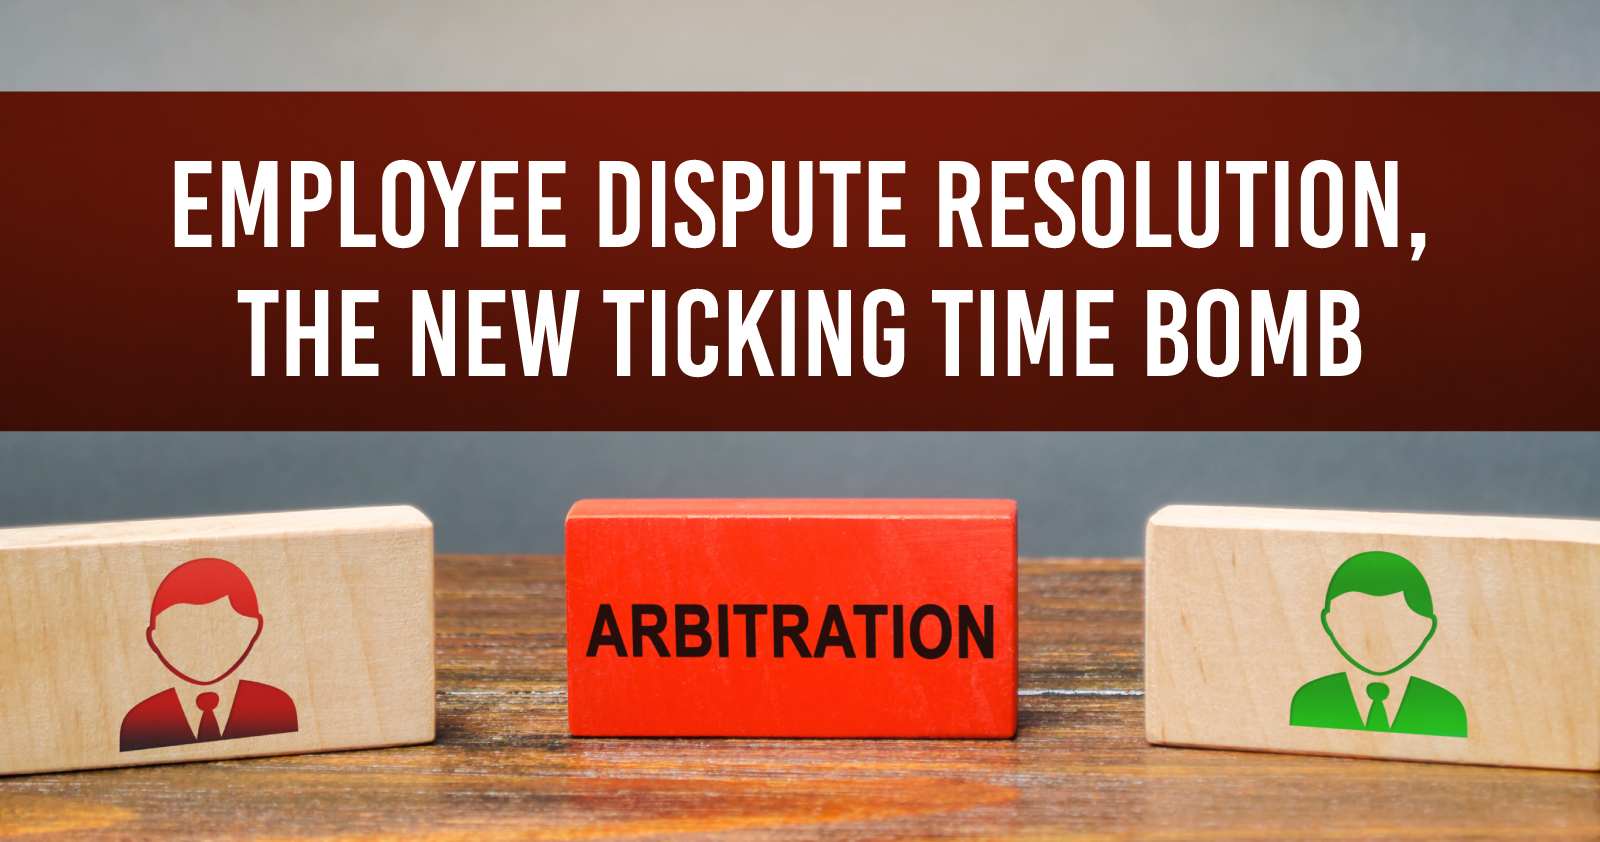 Employee Dispute Resolution The New Ticking Time Bomb